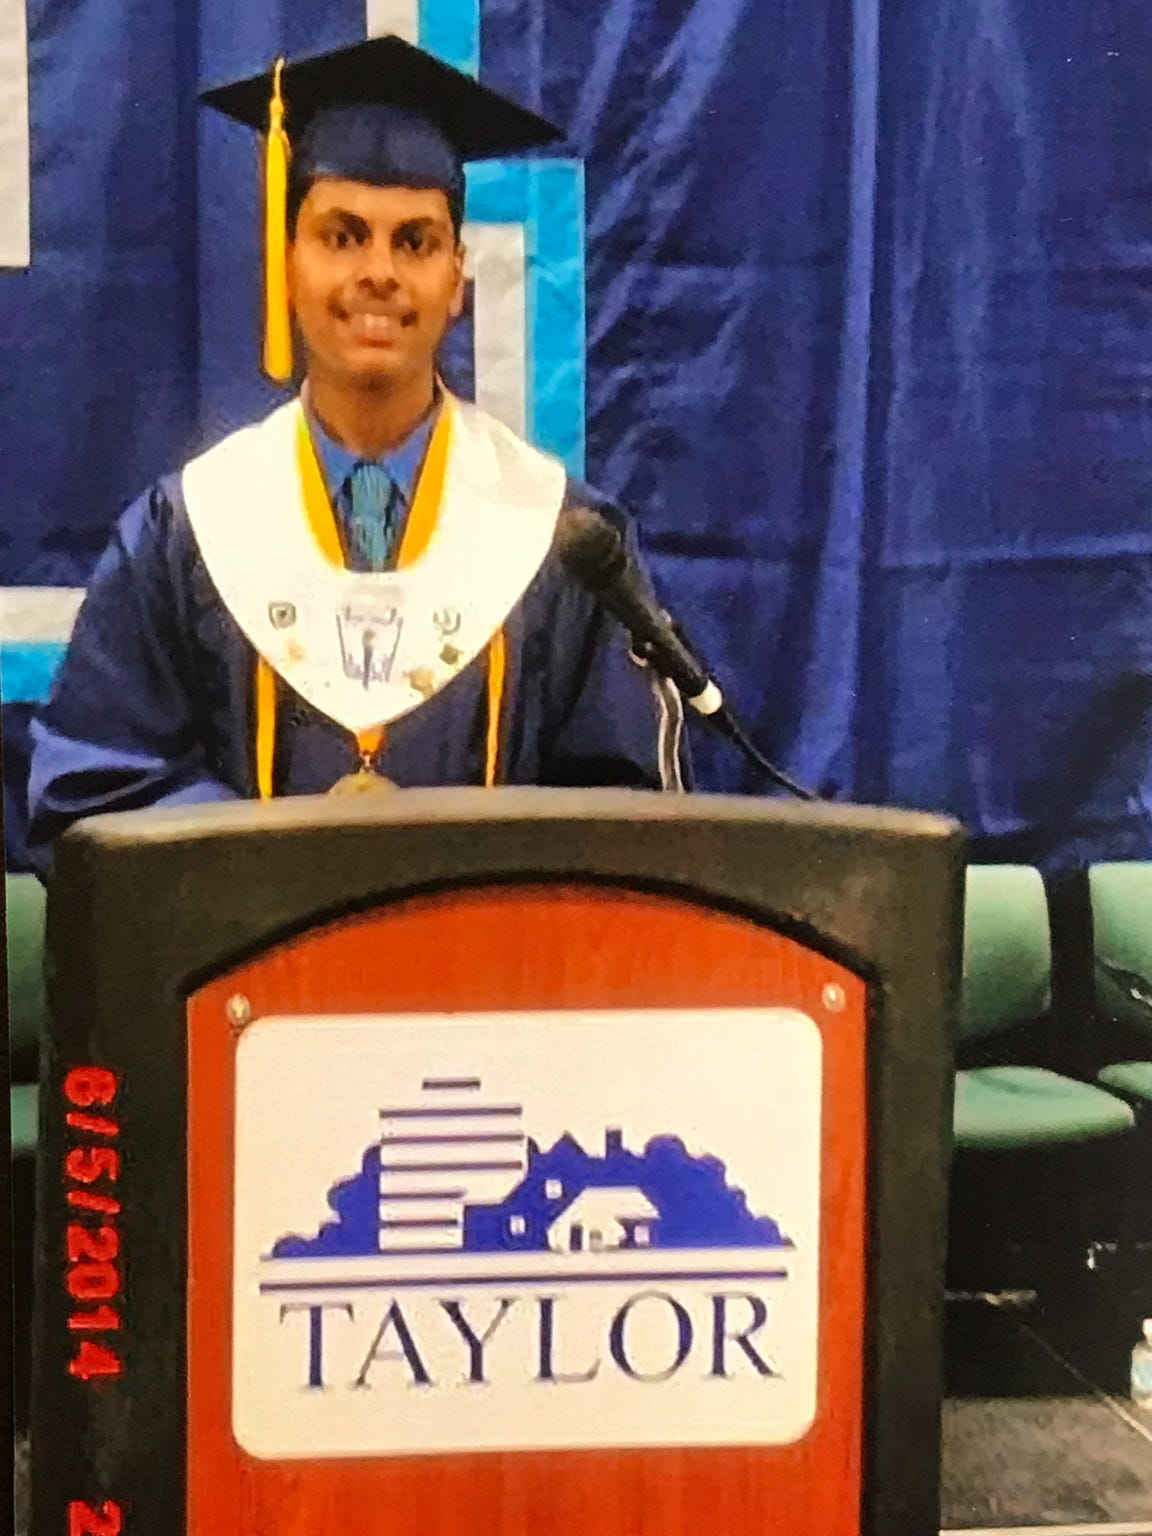 This is a family photo from the high school graduation of Raheel Siddiqui.